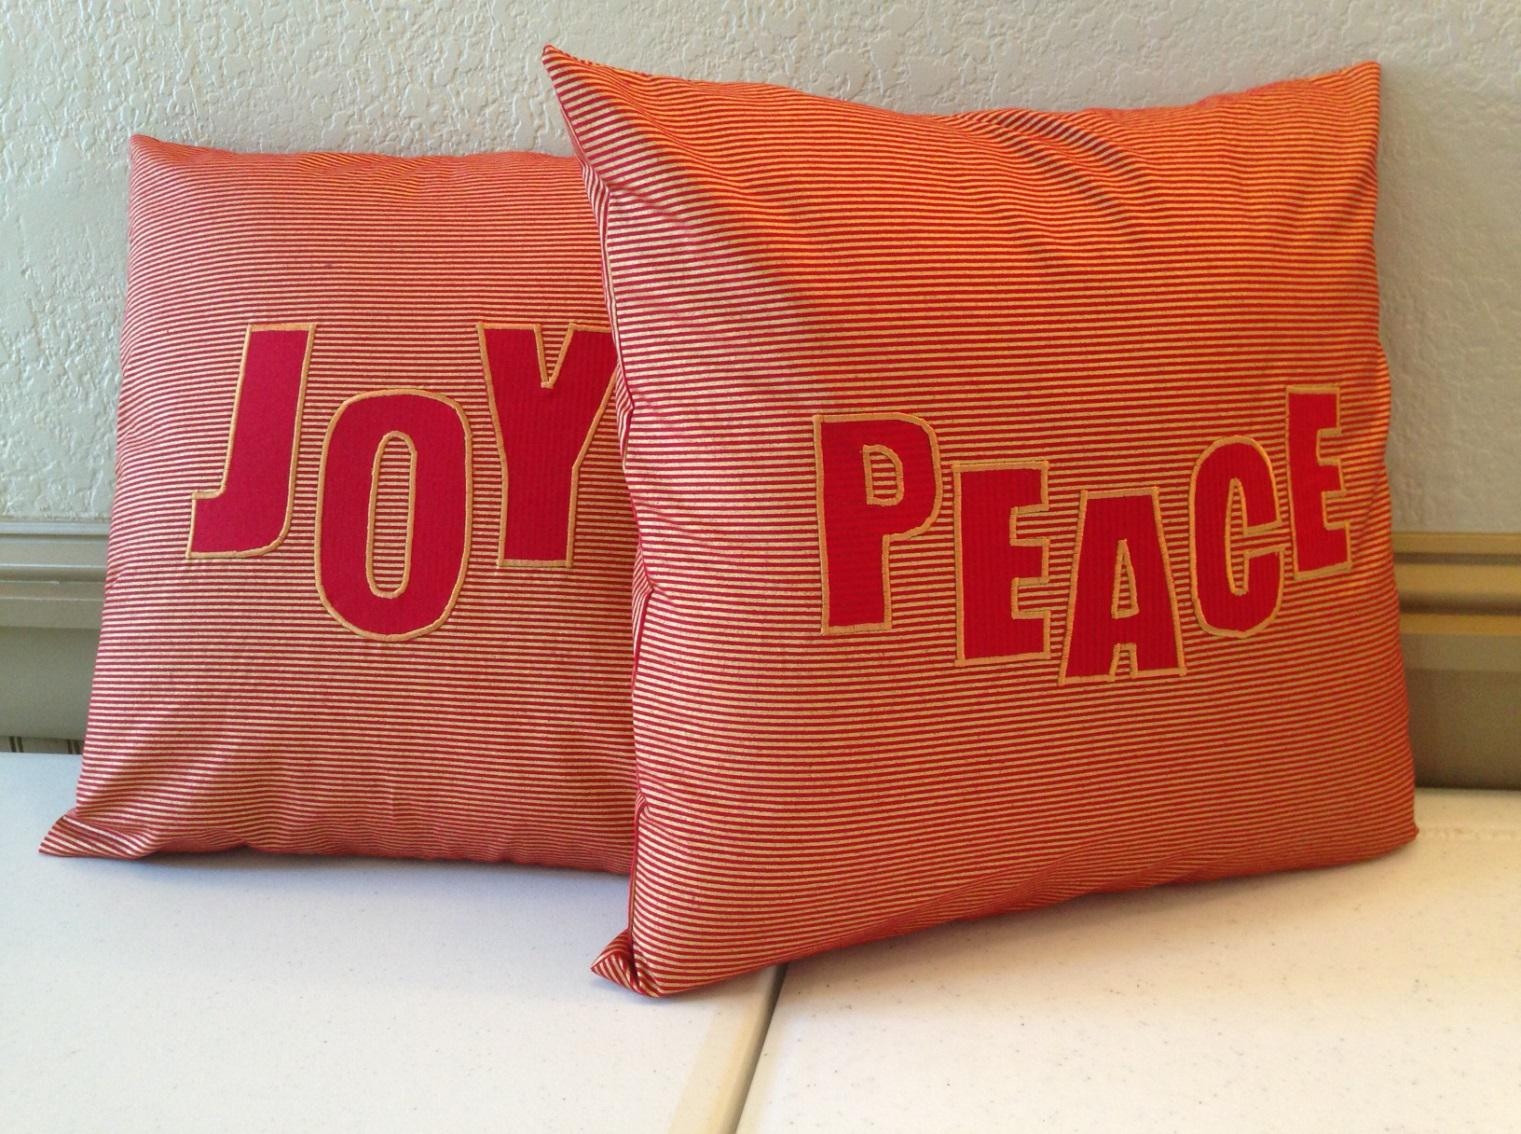 DIY decorative pillows with religious motifs